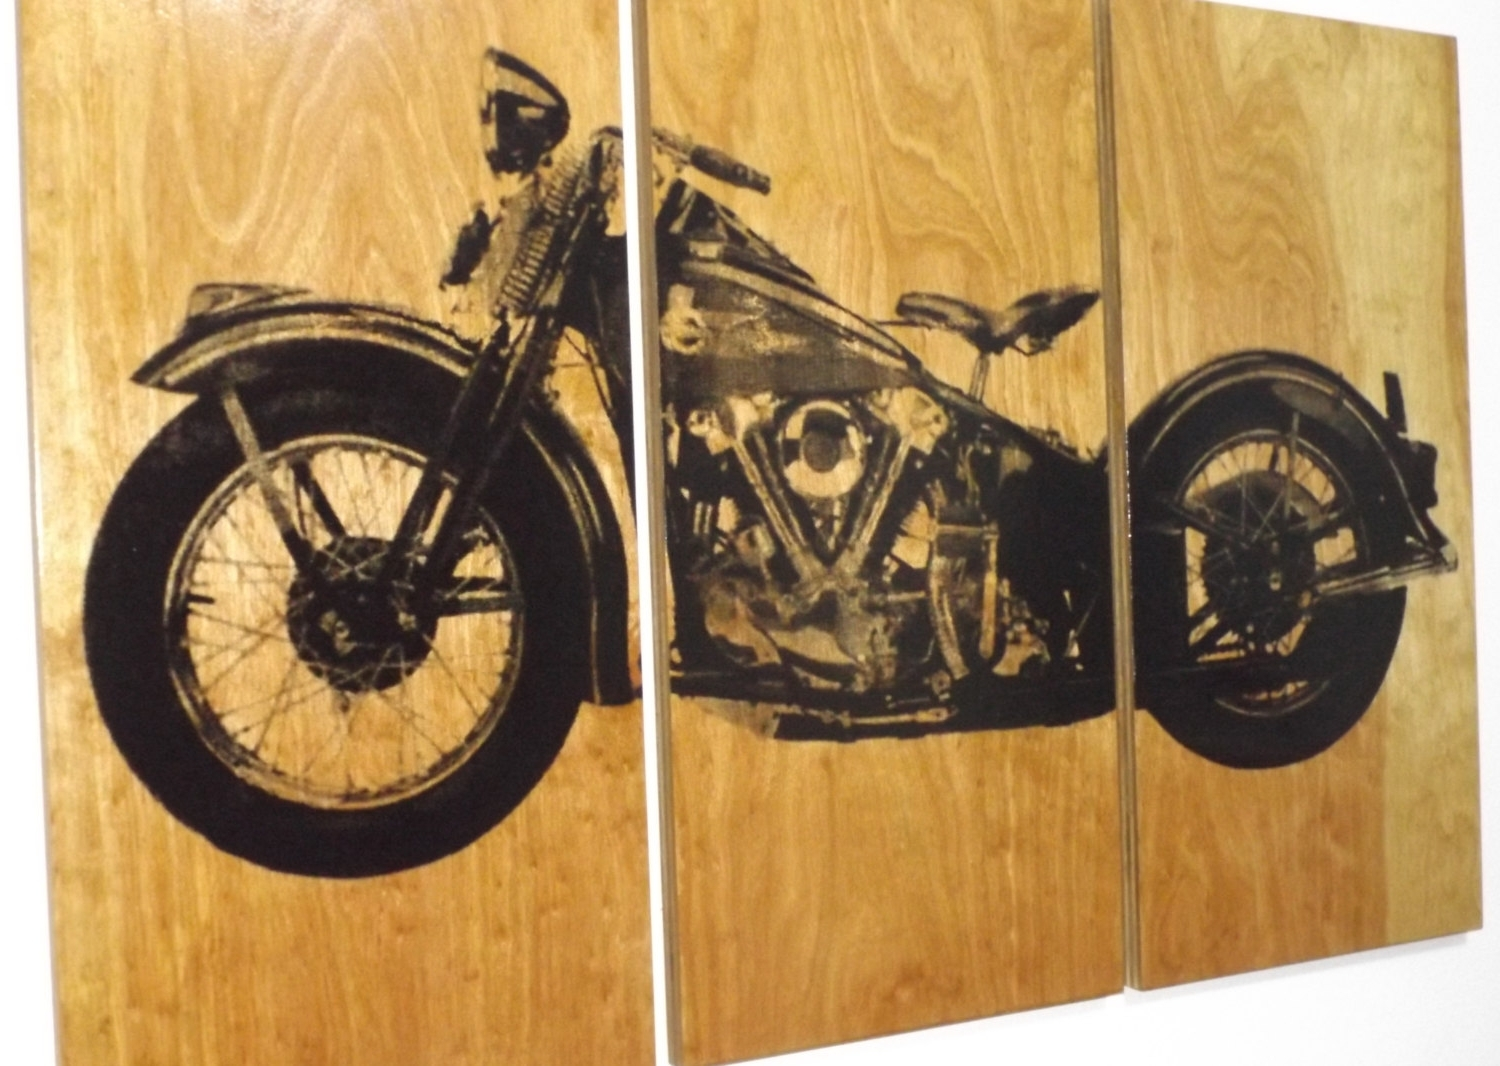 Patent Harley Motorcycle Poste Photo On Harley Davidson Wall Art With Regard To Widely Used Harley Davidson Wall Art (Gallery 7 of 20)